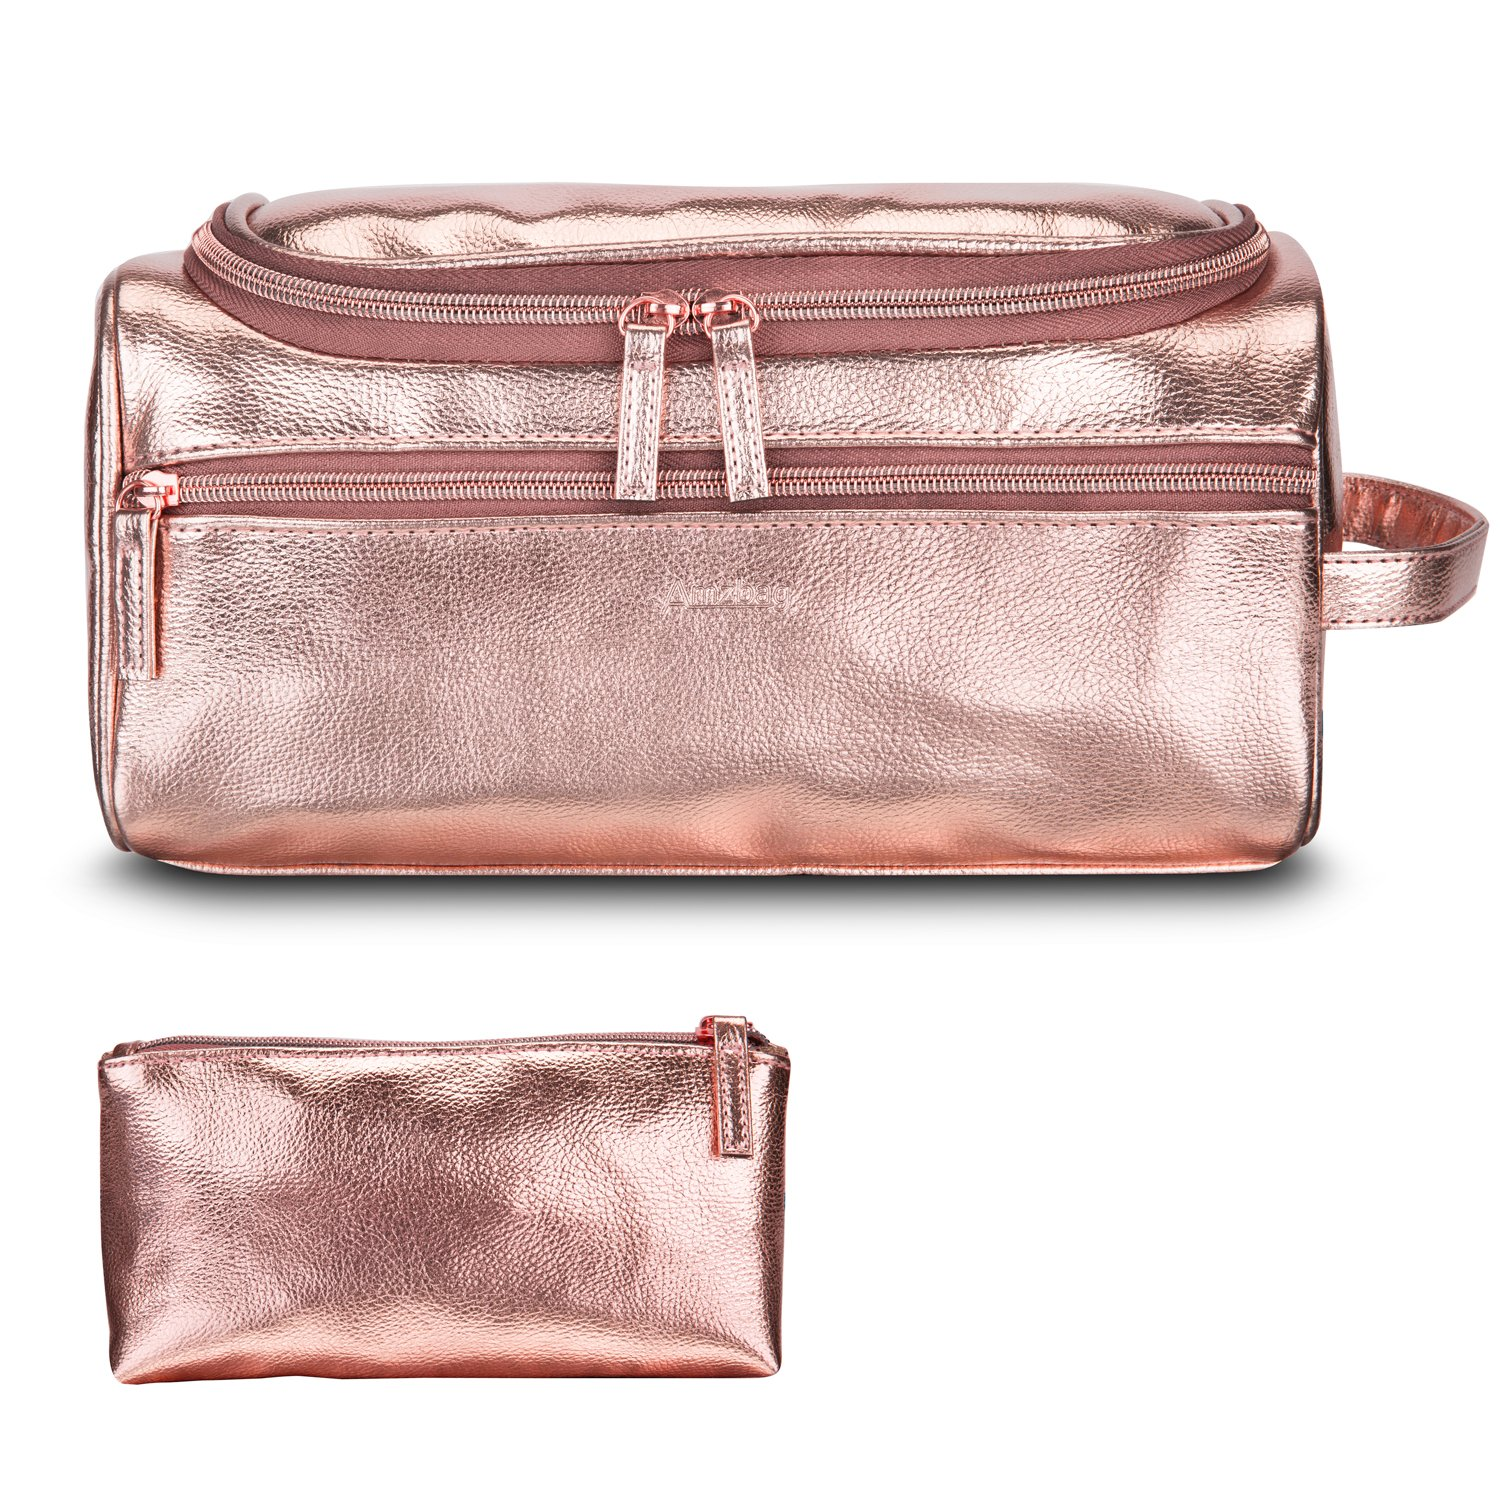 Get Quotations Amzbag Leather Toiletry Bag Travel Organizer Portable Hanging Makeup Dopp Kit Shaving Cosmetic